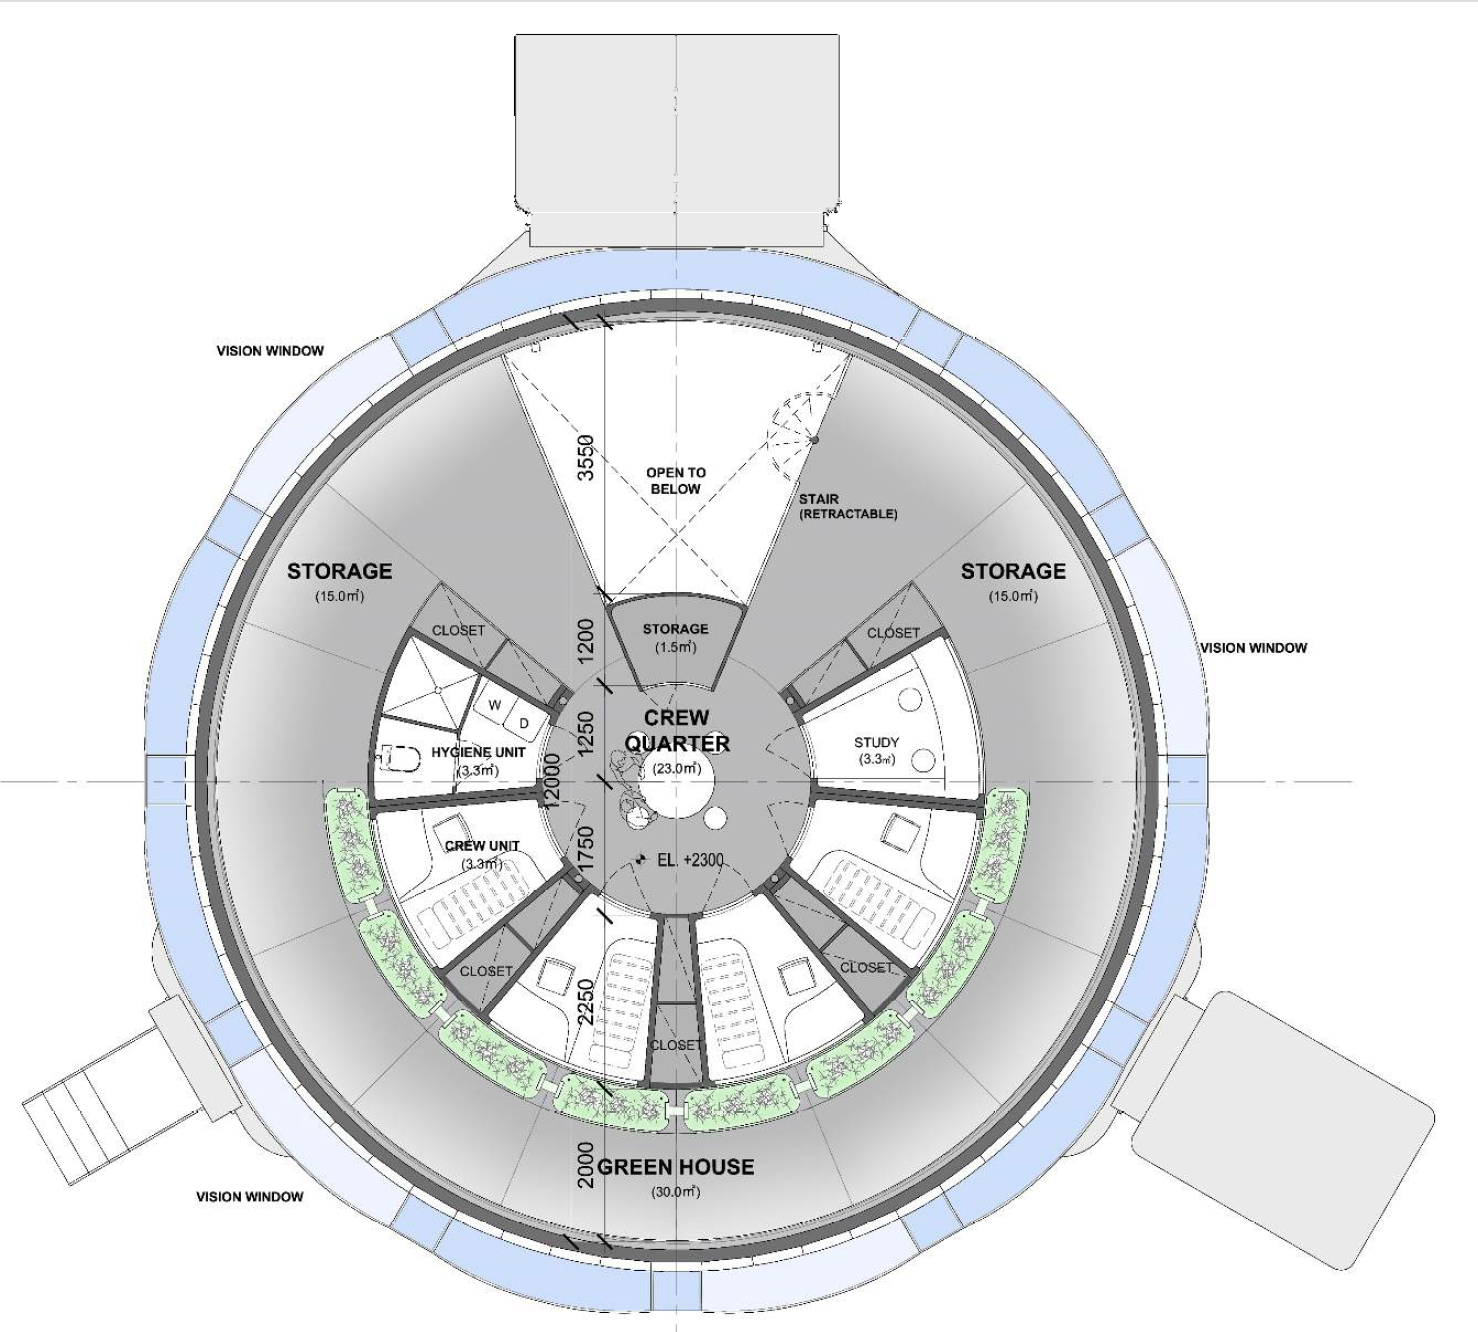 Second floor plan and program areas